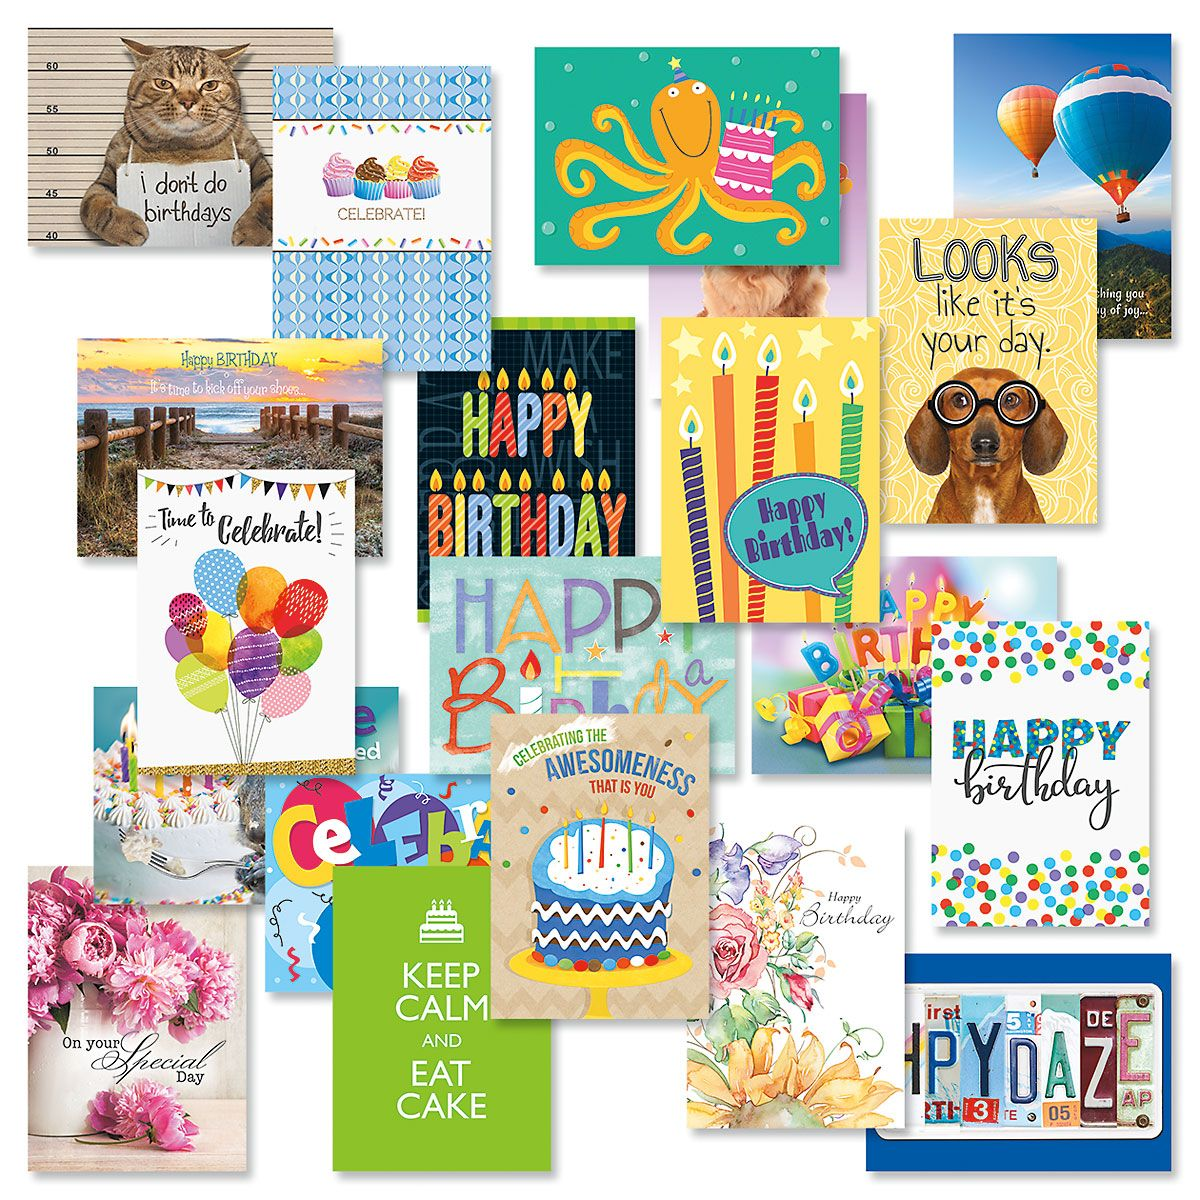 Mega Happy Birthday Cards Value Pack - Set Of 80